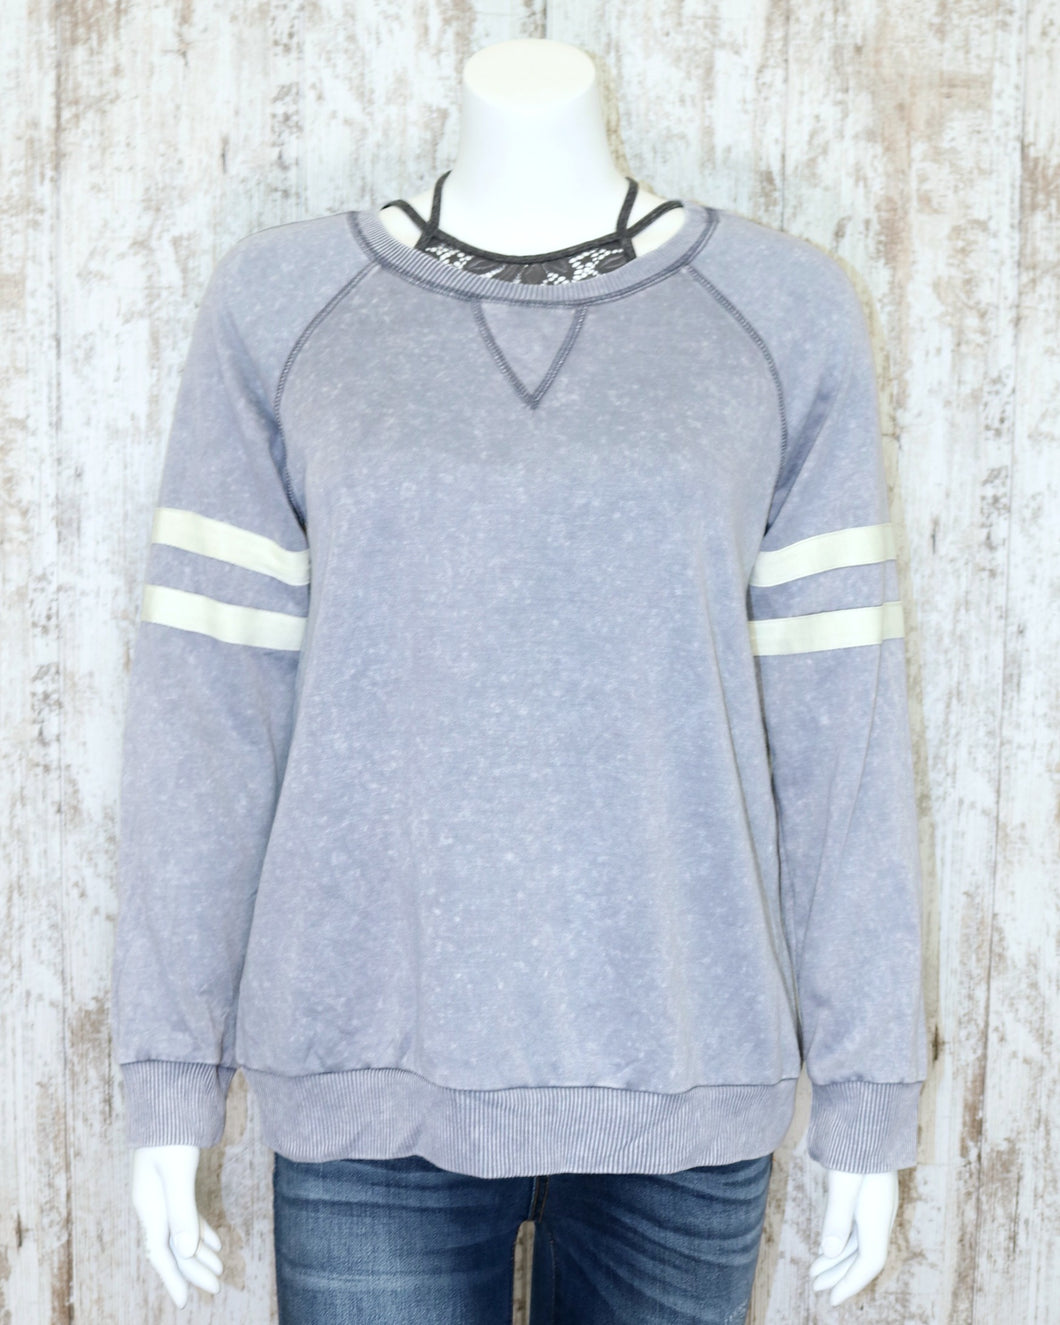 Long Slv Mineral Washed Super Soft Sweatshirt w Striped Arm Accents B3361